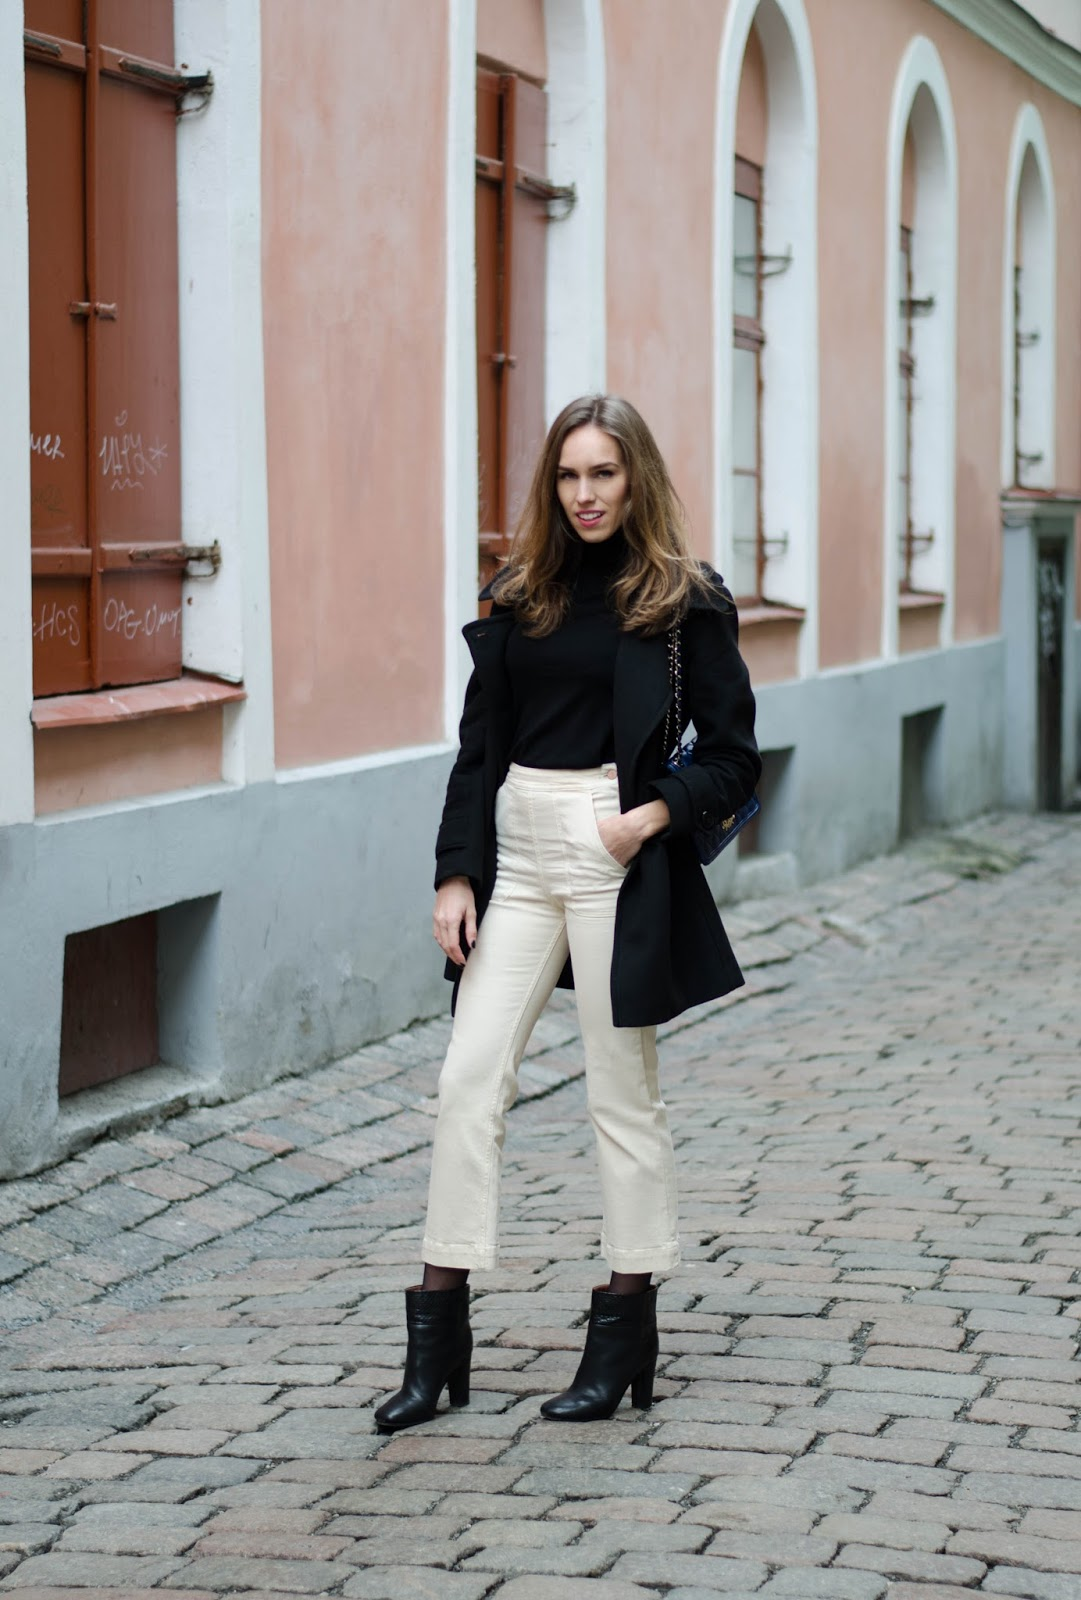 kristjaana mere kick flare ankle jeans pea coat winter outfit